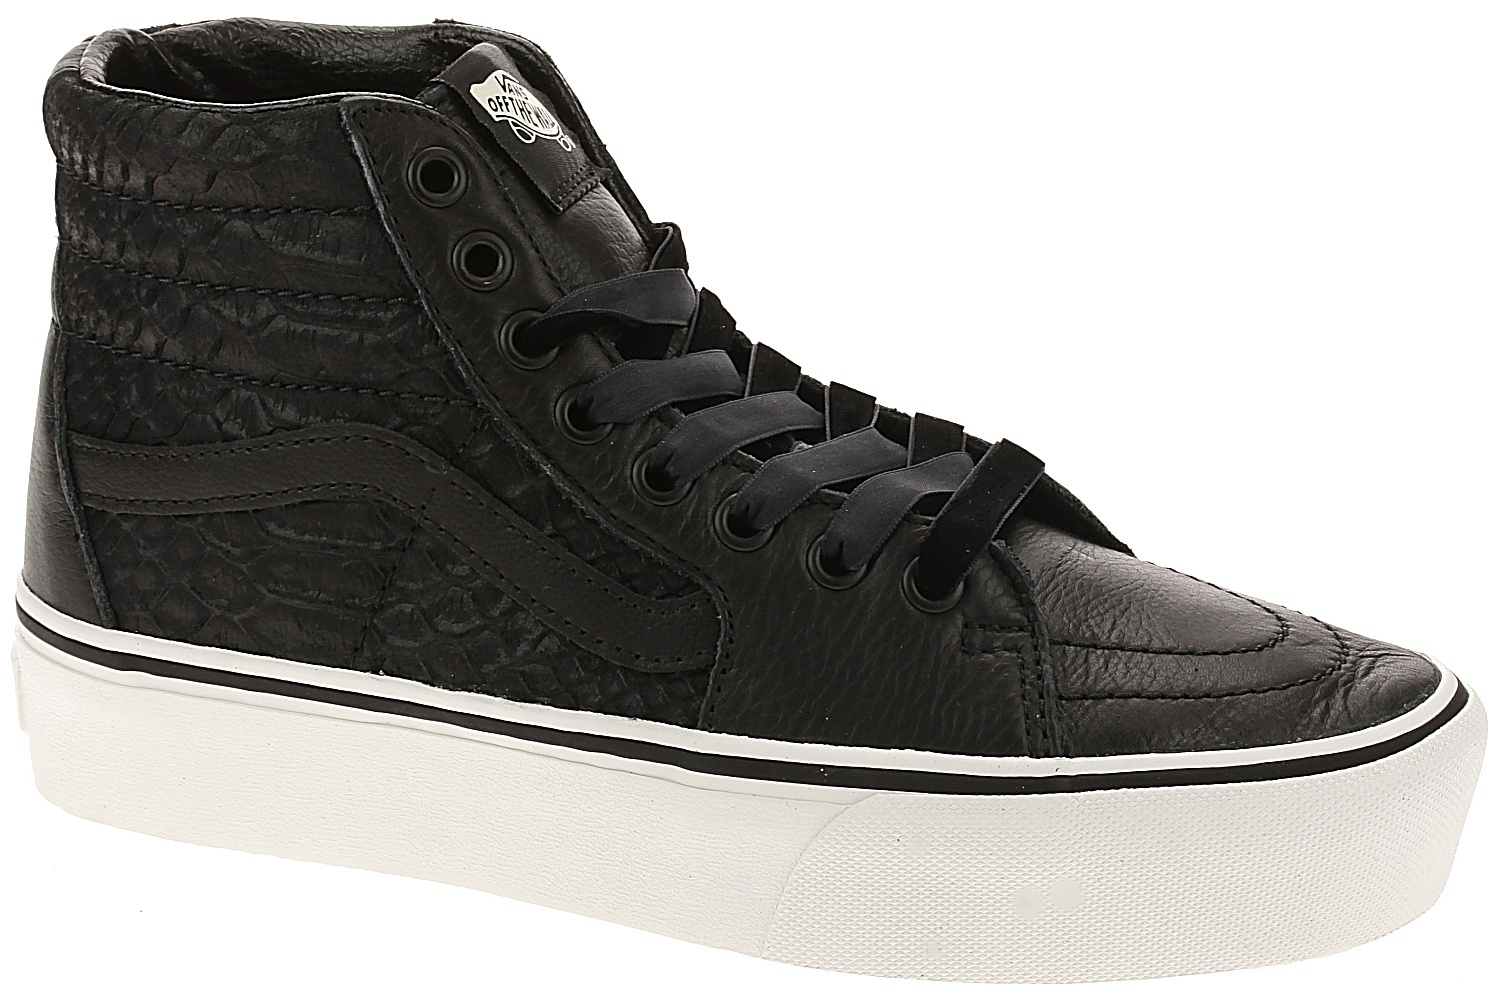 04c426032c shoes Vans Sk8-Hi Platform 2 - Leather Snake Black - Snowboard shop ...